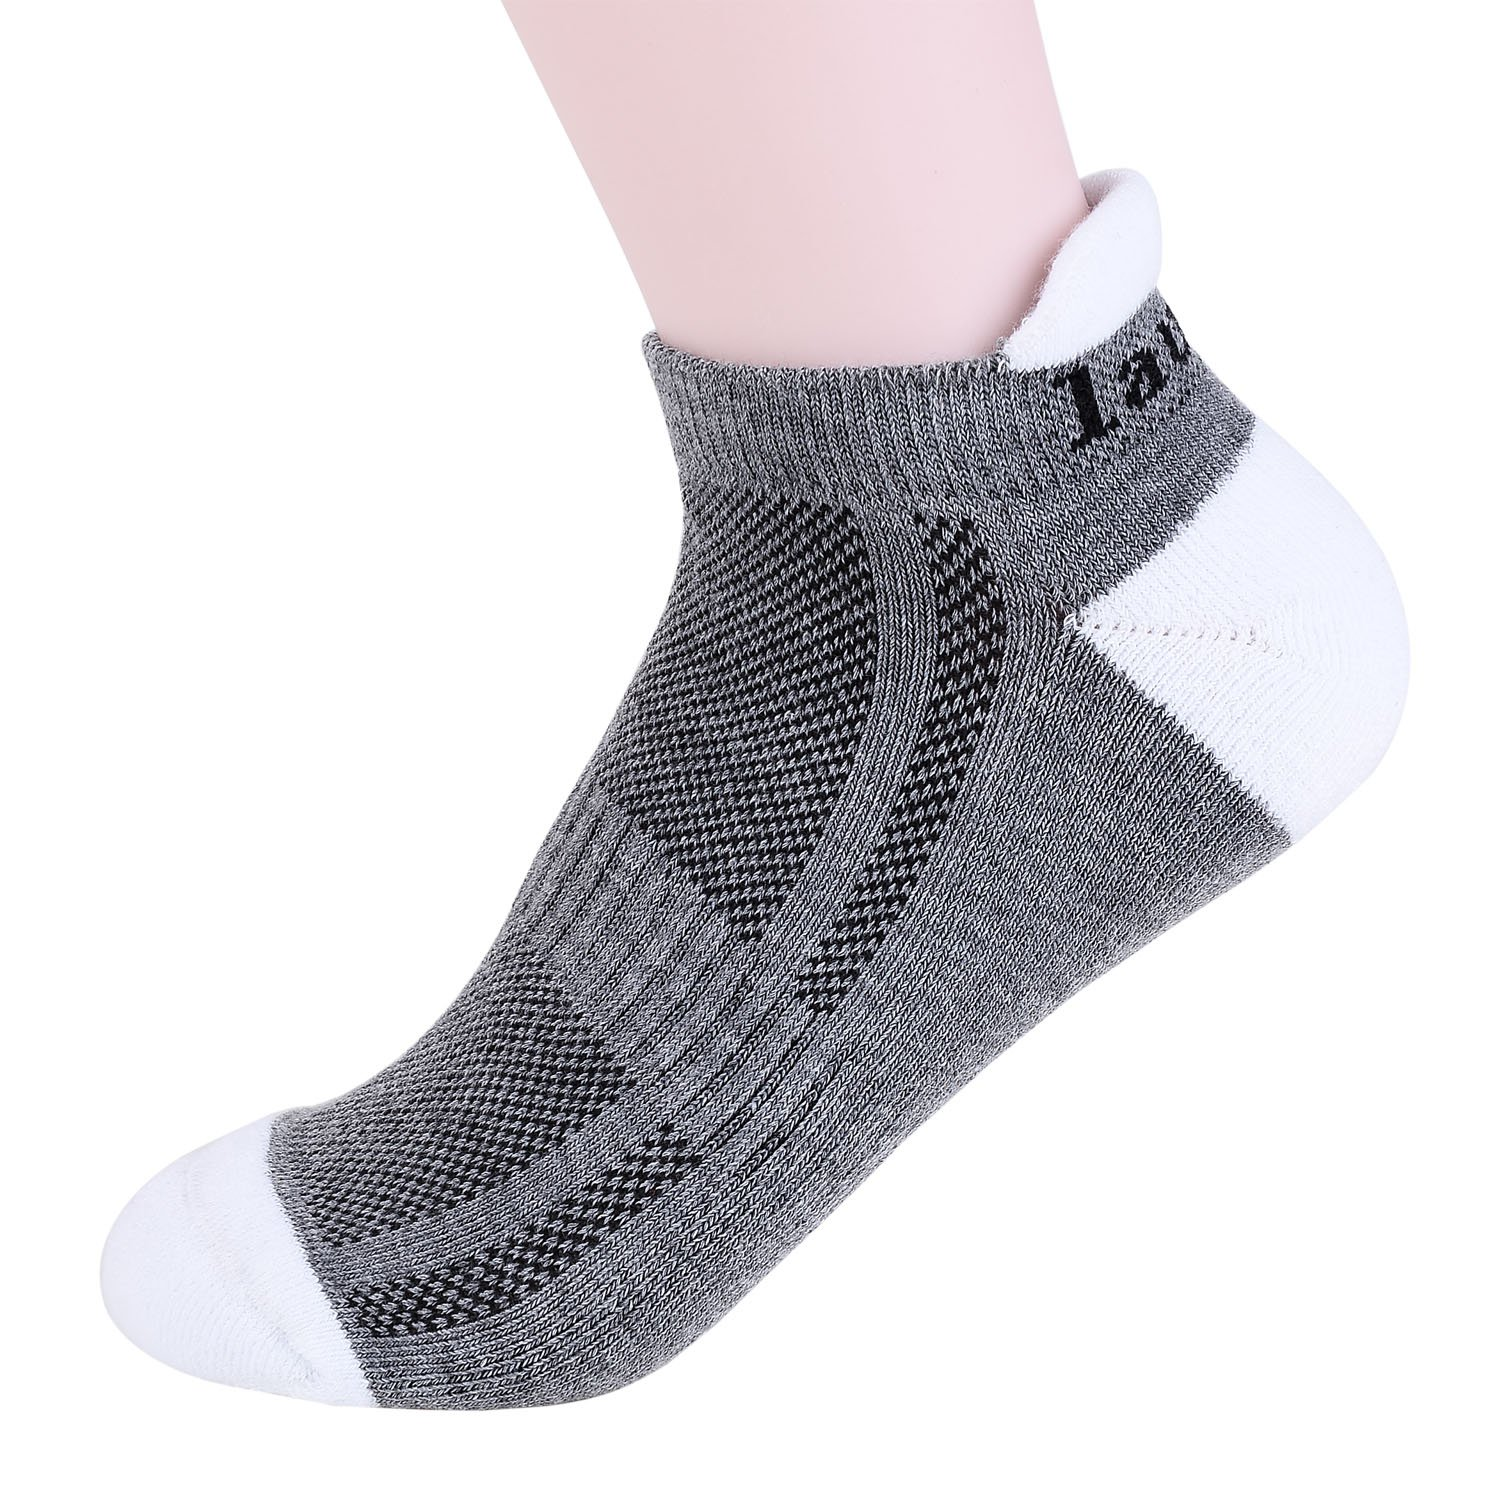 Calcetines Laulax de Coolmax tama/ño large profesionales para running atl/ético color Achilles Tendon Protection Grey wite White Toe mujer hombre